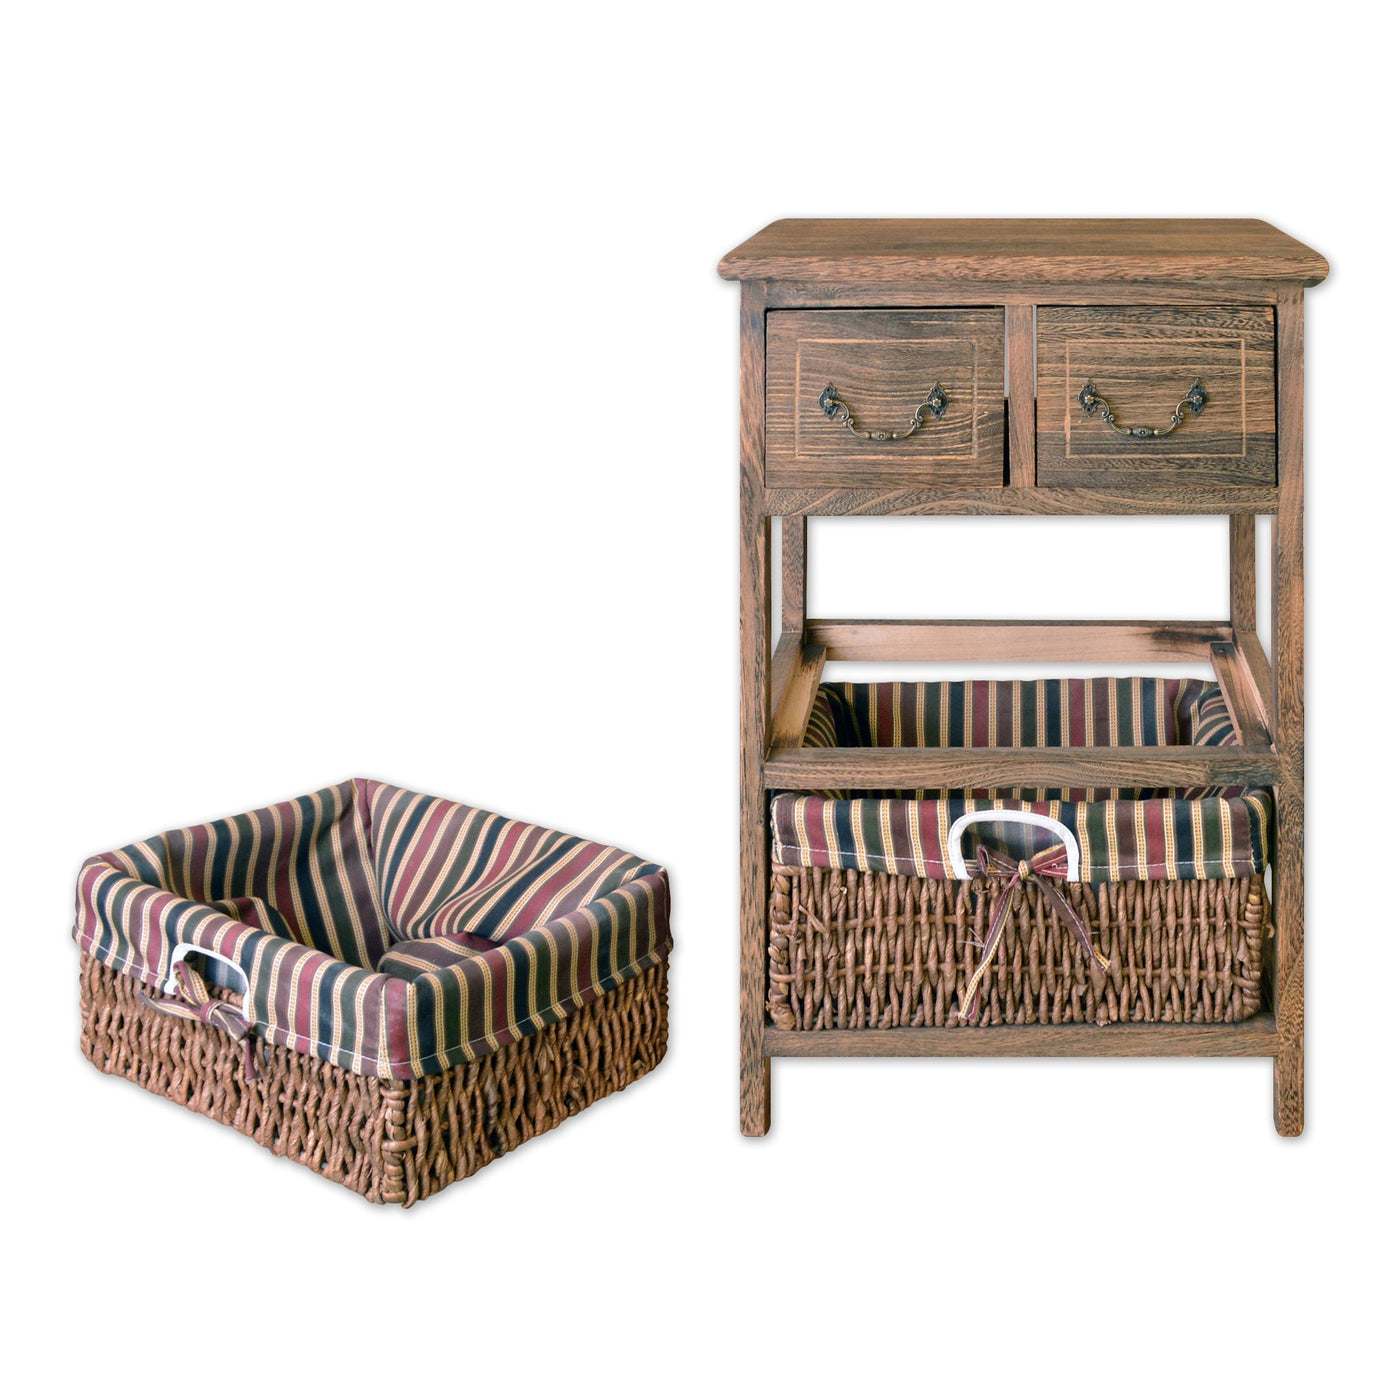 ... Furniture - 22  Wooden 3 Tier Storage Unit With 2 Drawers And 2 Rattan Baskets ...  sc 1 st  Homenique.net & 3 Tier Storage Unit with 2 Drawers u0026 2 Wicker Baskets - 22